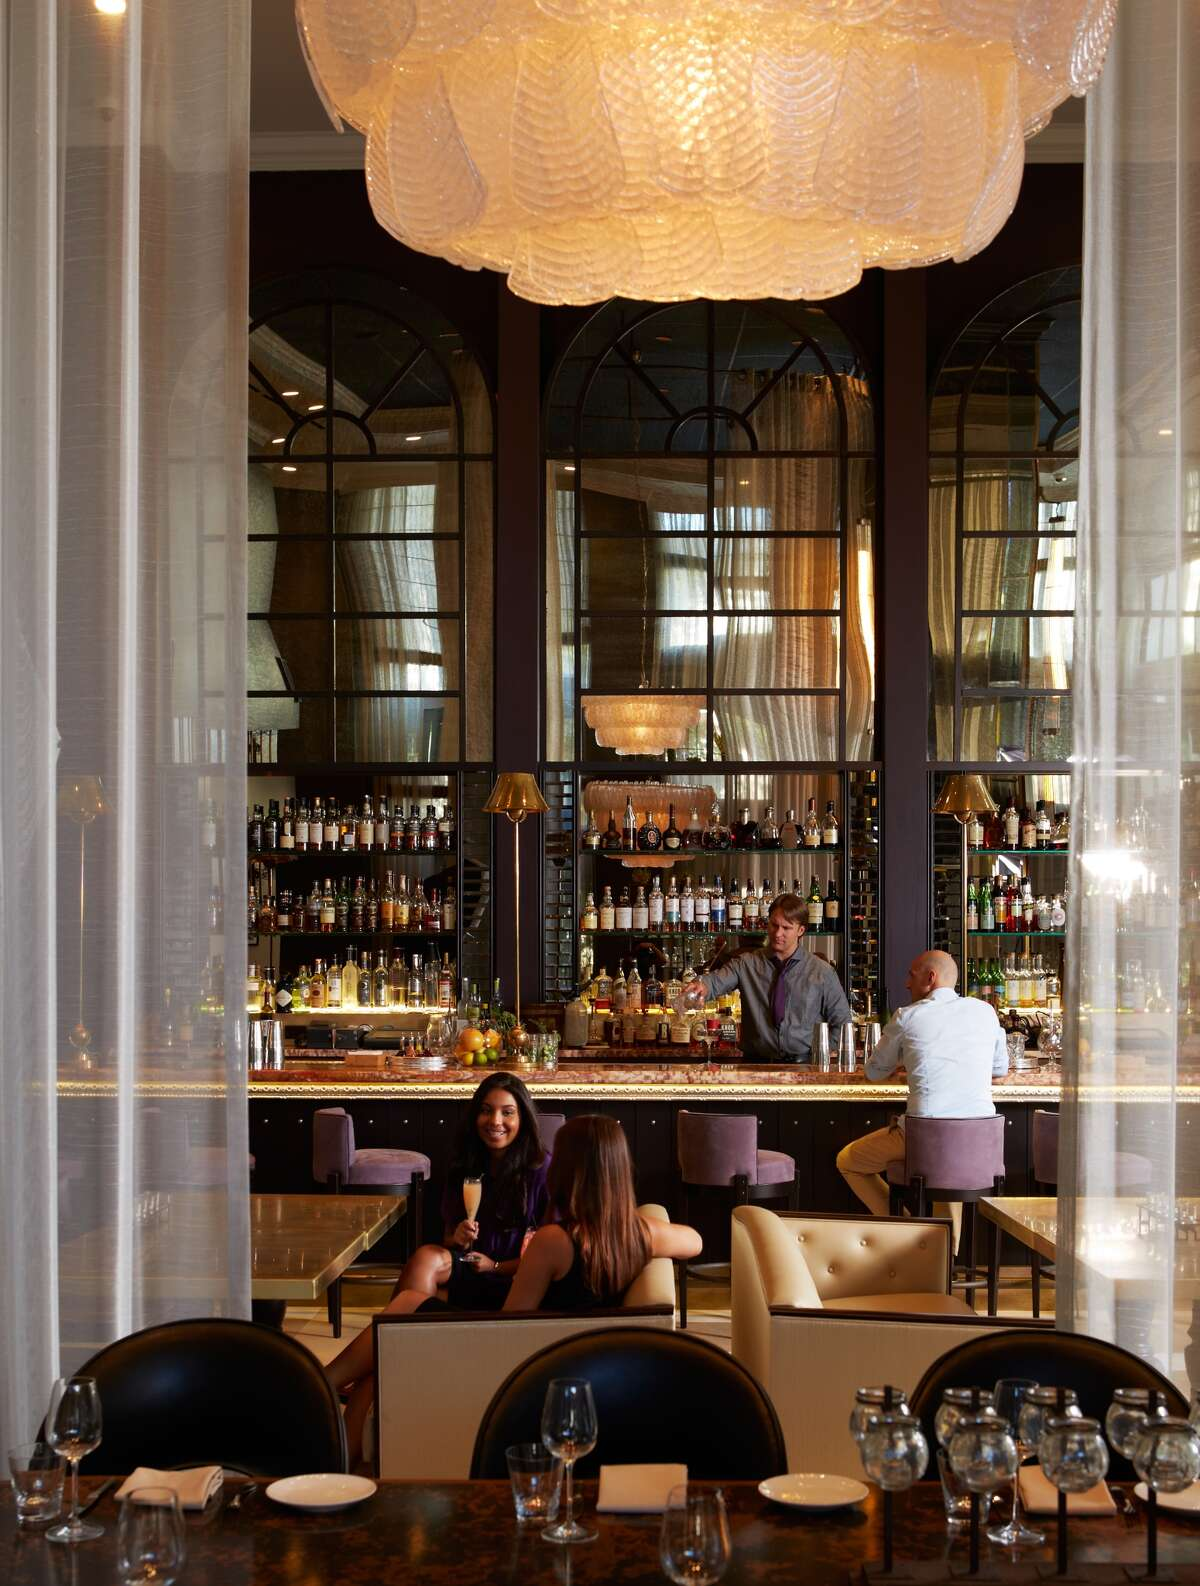 No. 1 Miami Gorgeous locals, a wealth of nightclubs, and a wild streak as long as the beach: Miami climbed from second to first place this year, thanks to its flair for throwing a big party. Hot spots like Wall at the W South Beach or the Italian-restaurant-meets-cocktail-lounge Cavalli get a big boost when celebs grace the premises, whether it's Bieber or the formerly single Clooney. Other trendy hangouts are a little more accessible to the non-red-carpet crowd: Tamarina, for one, features an oyster bar and alfresco champagne bar, plus a reasonably priced happy hour. You might meet other singles while strolling through galleries and past street art on the Wynwood Art Walks, held the second Saturday of the month. And in this otherwise well-dressed town, your best secret-weapon accessory may be a smile: readers found the locals to be a little aloof.